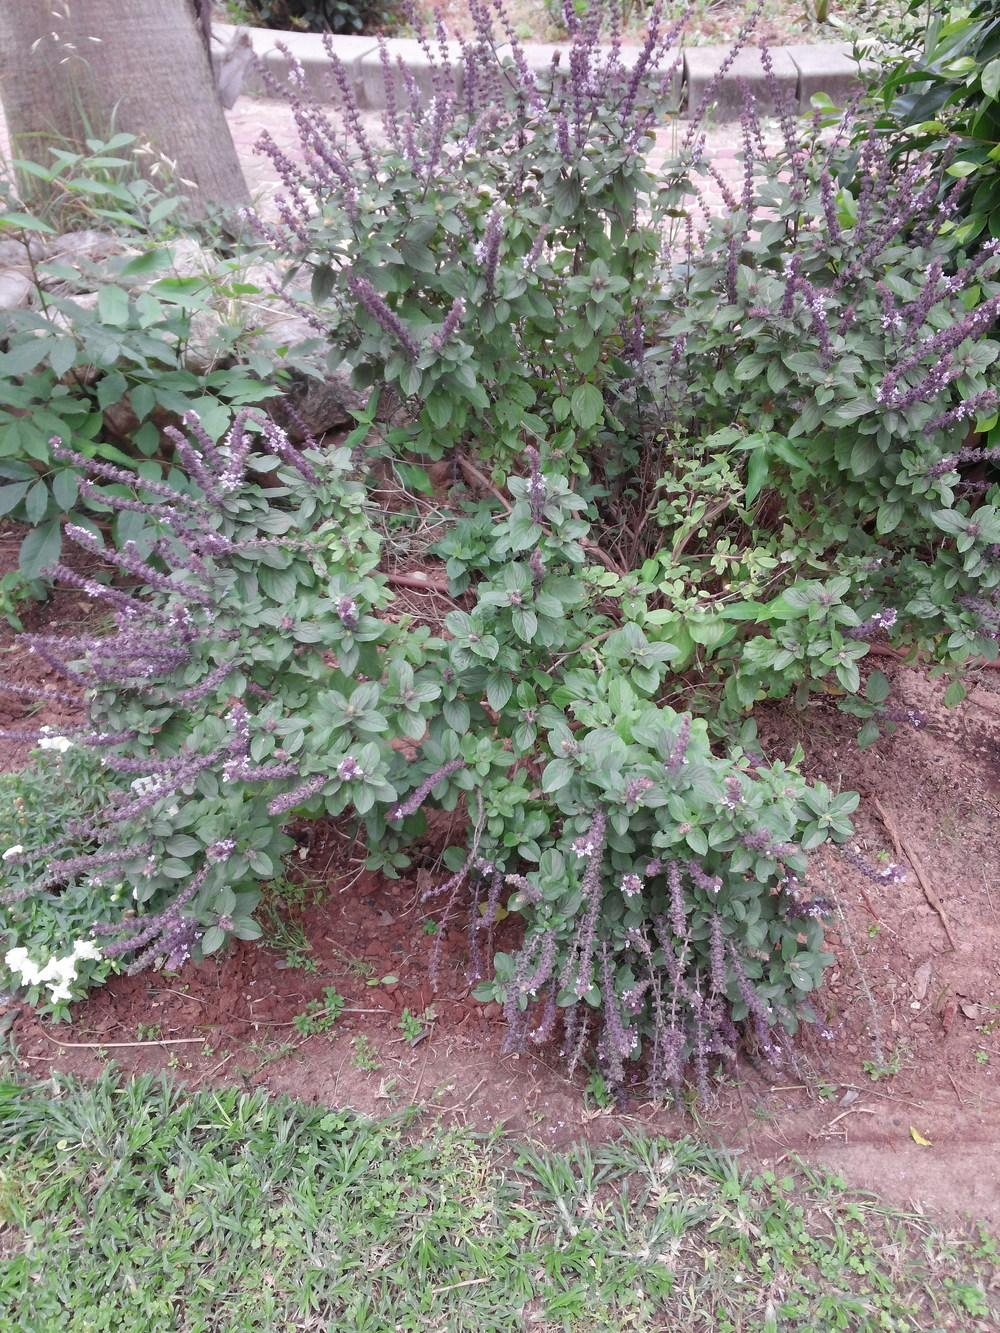 Plant ID forum Please help to identify this plant